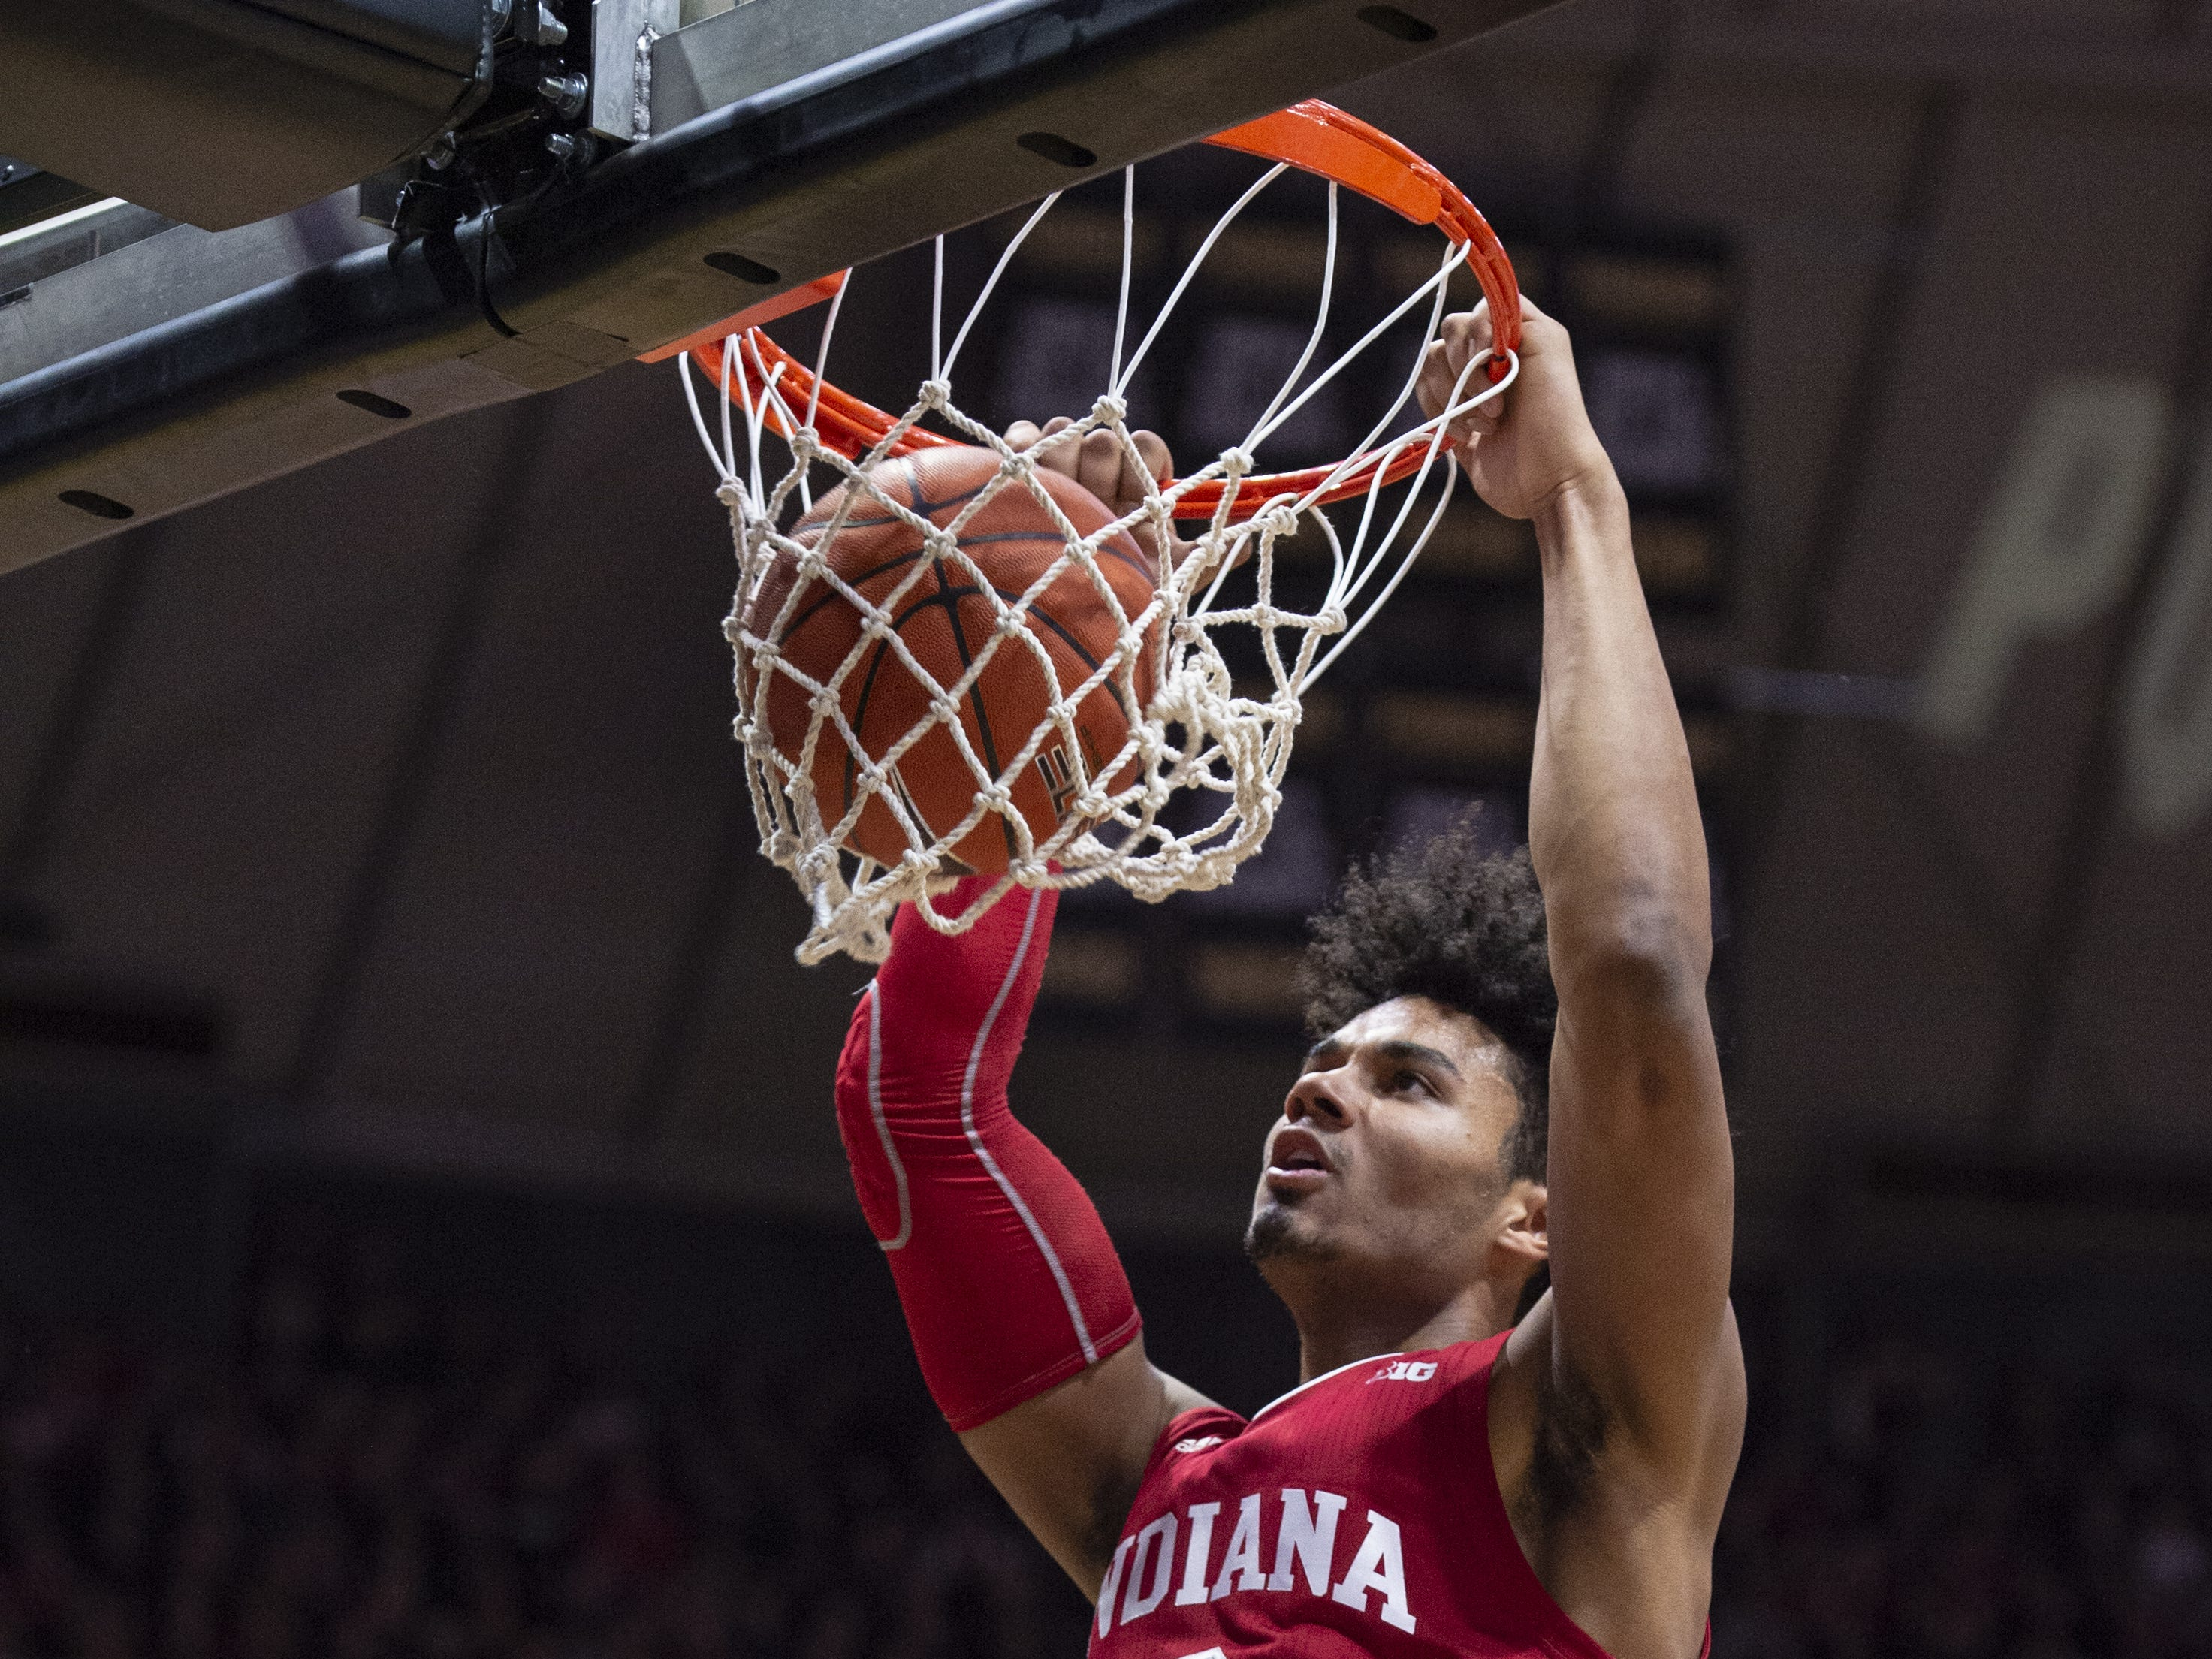 Indiana Hoosiers forward Justin Smith (3) scores with a slam dunk during the first half against Purdue.